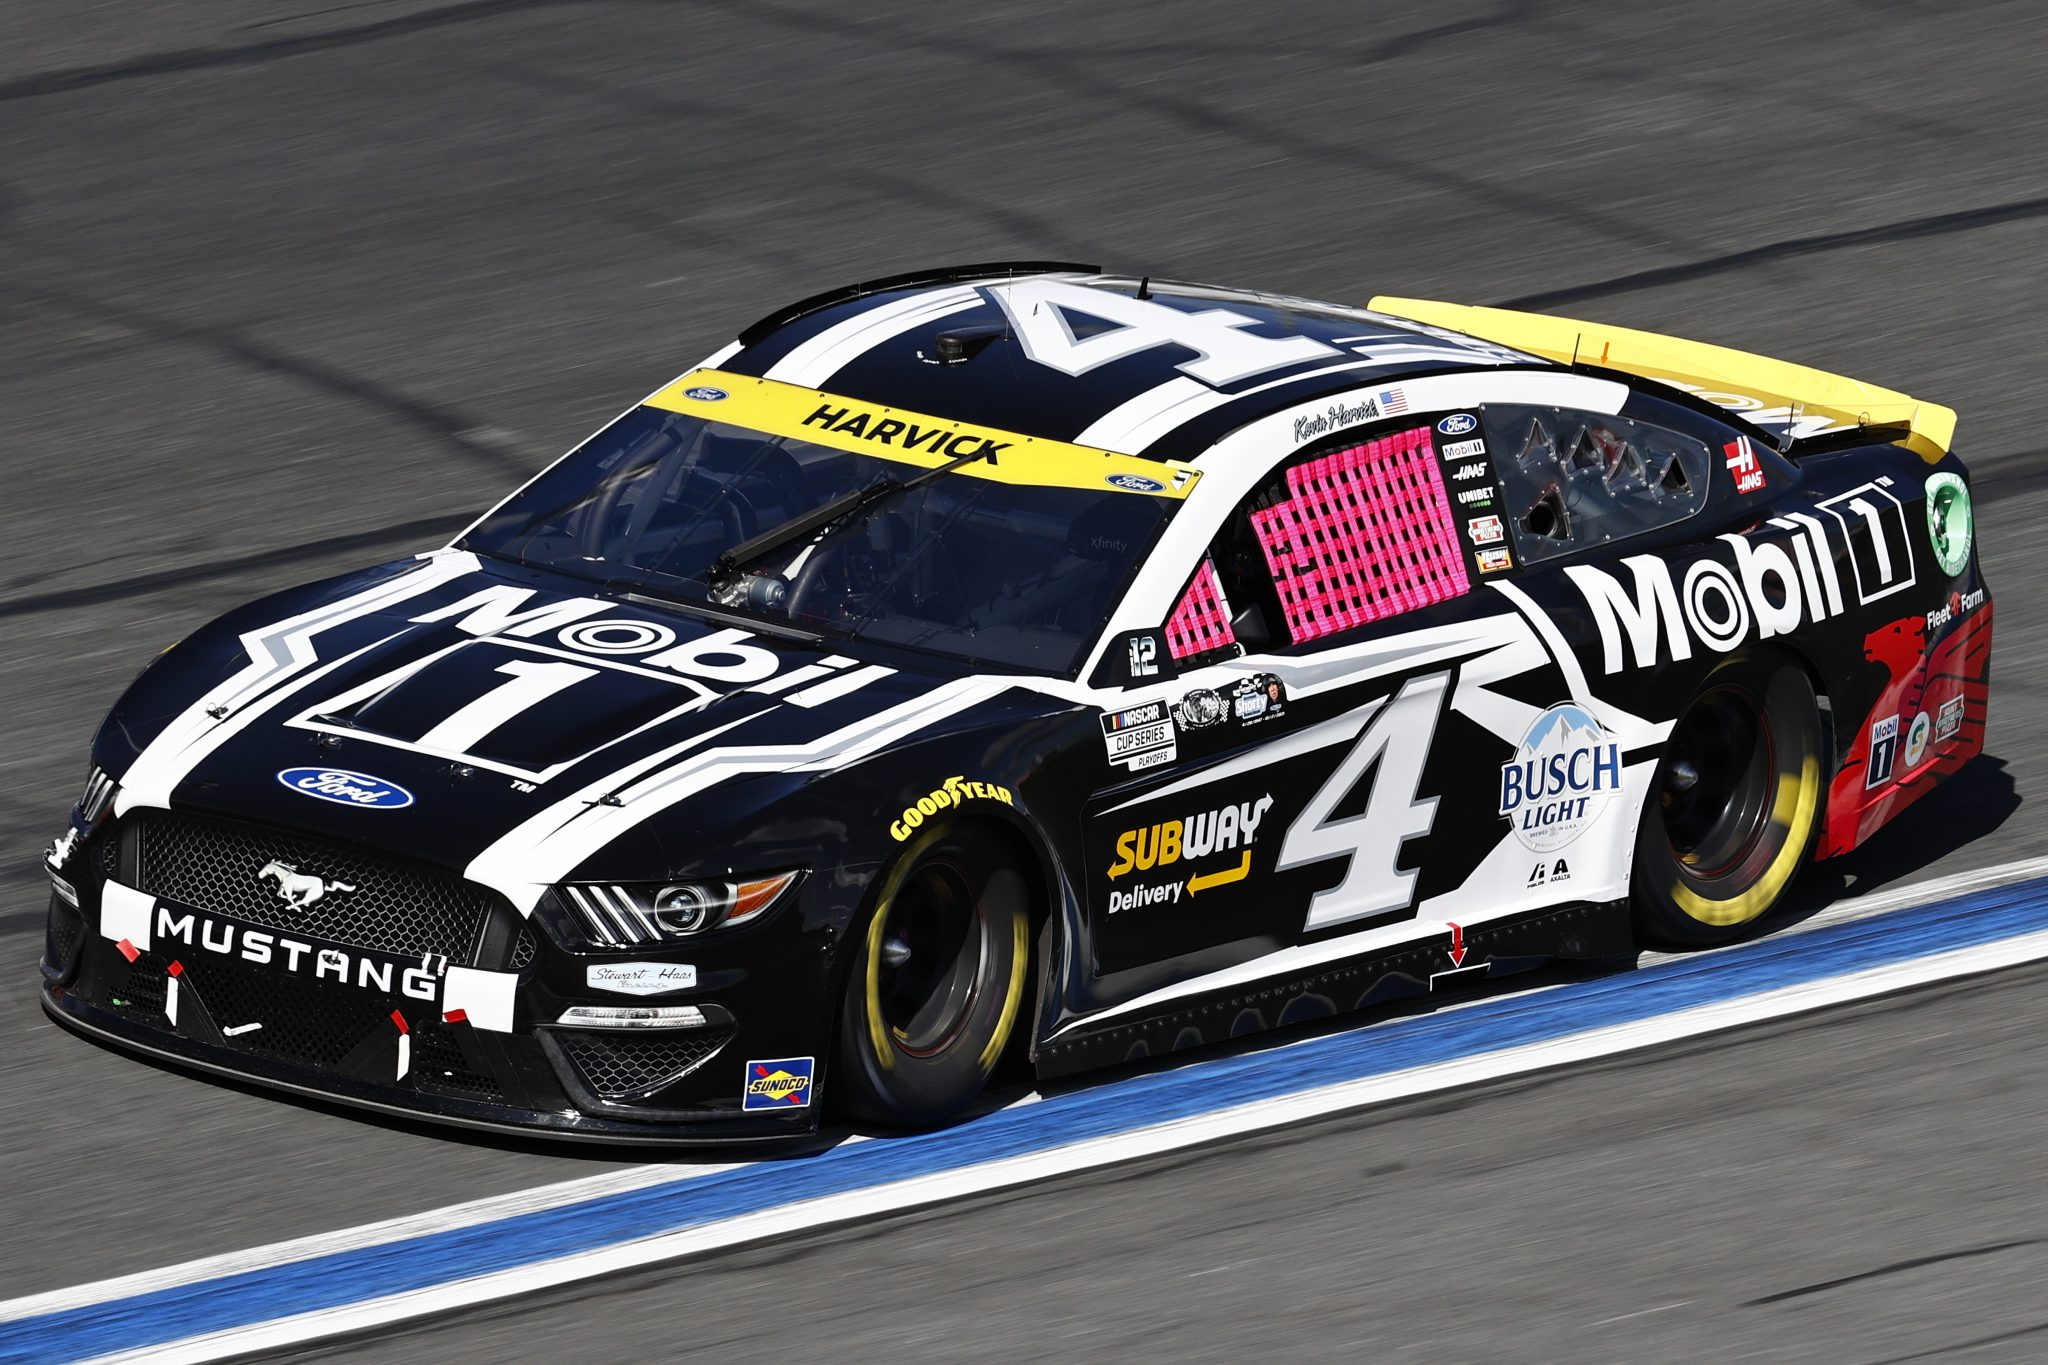 CONCORD, NORTH CAROLINA - OCTOBER 10: Kevin Harvick, driver of the #4 Mobil 1 Ford, drives during the NASCAR Cup Series Bank of America ROVAL 400 at Charlotte Motor Speedway on October 10, 2021 in Concord, North Carolina. (Photo by Jared C. Tilton/Getty Images) | Getty Images